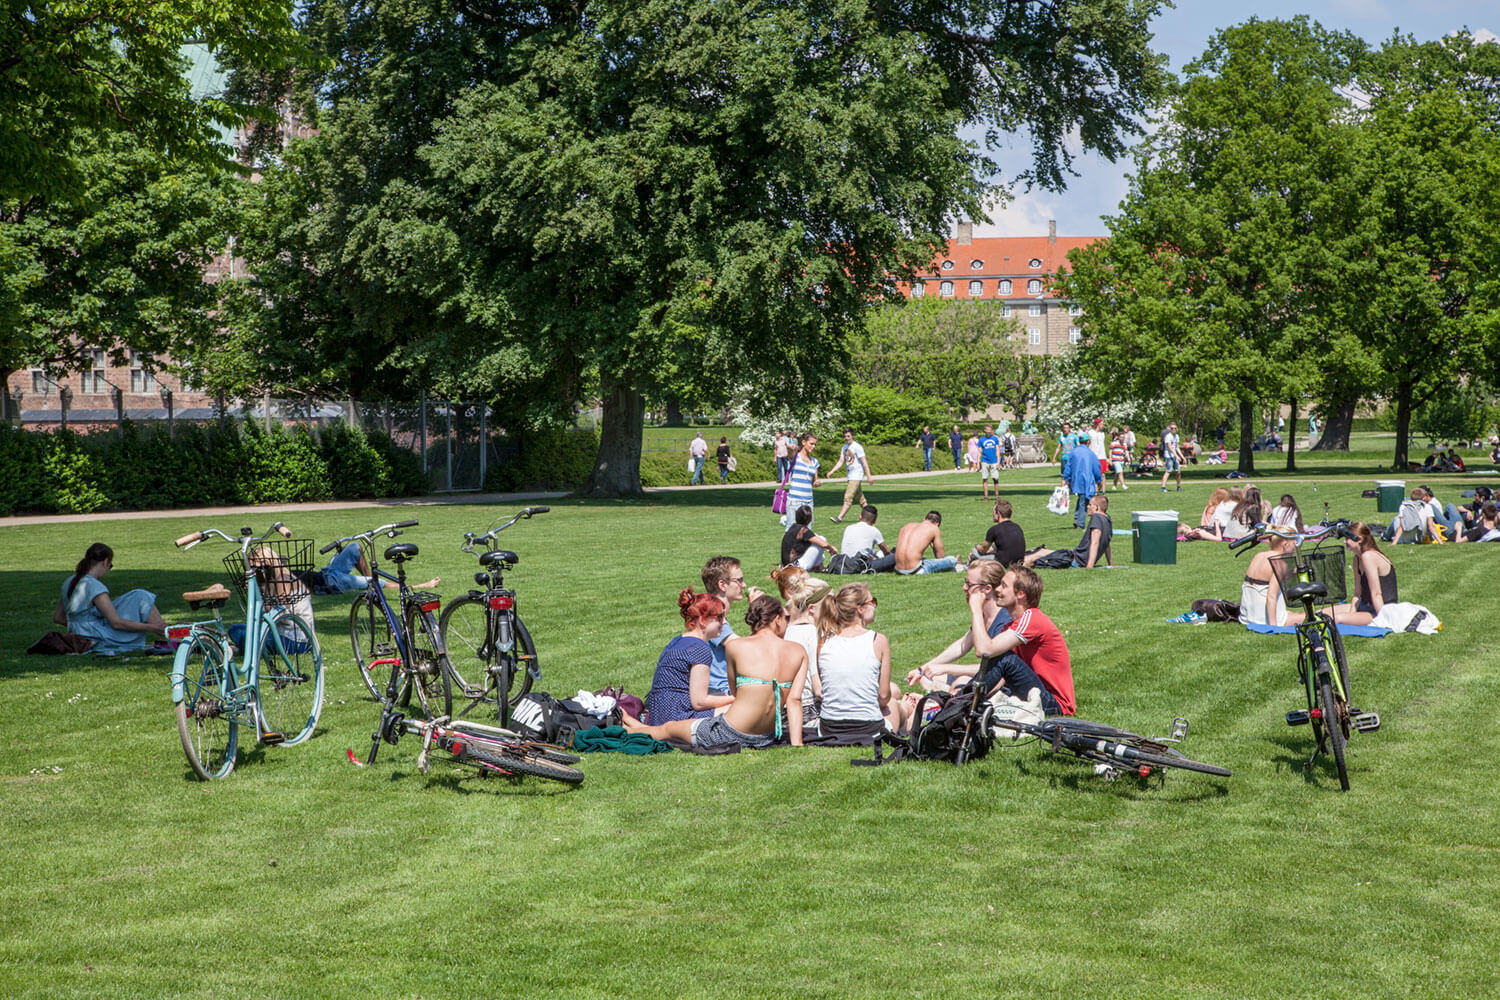 People and bikes on the grass of Churchill Park, Copenhagen.